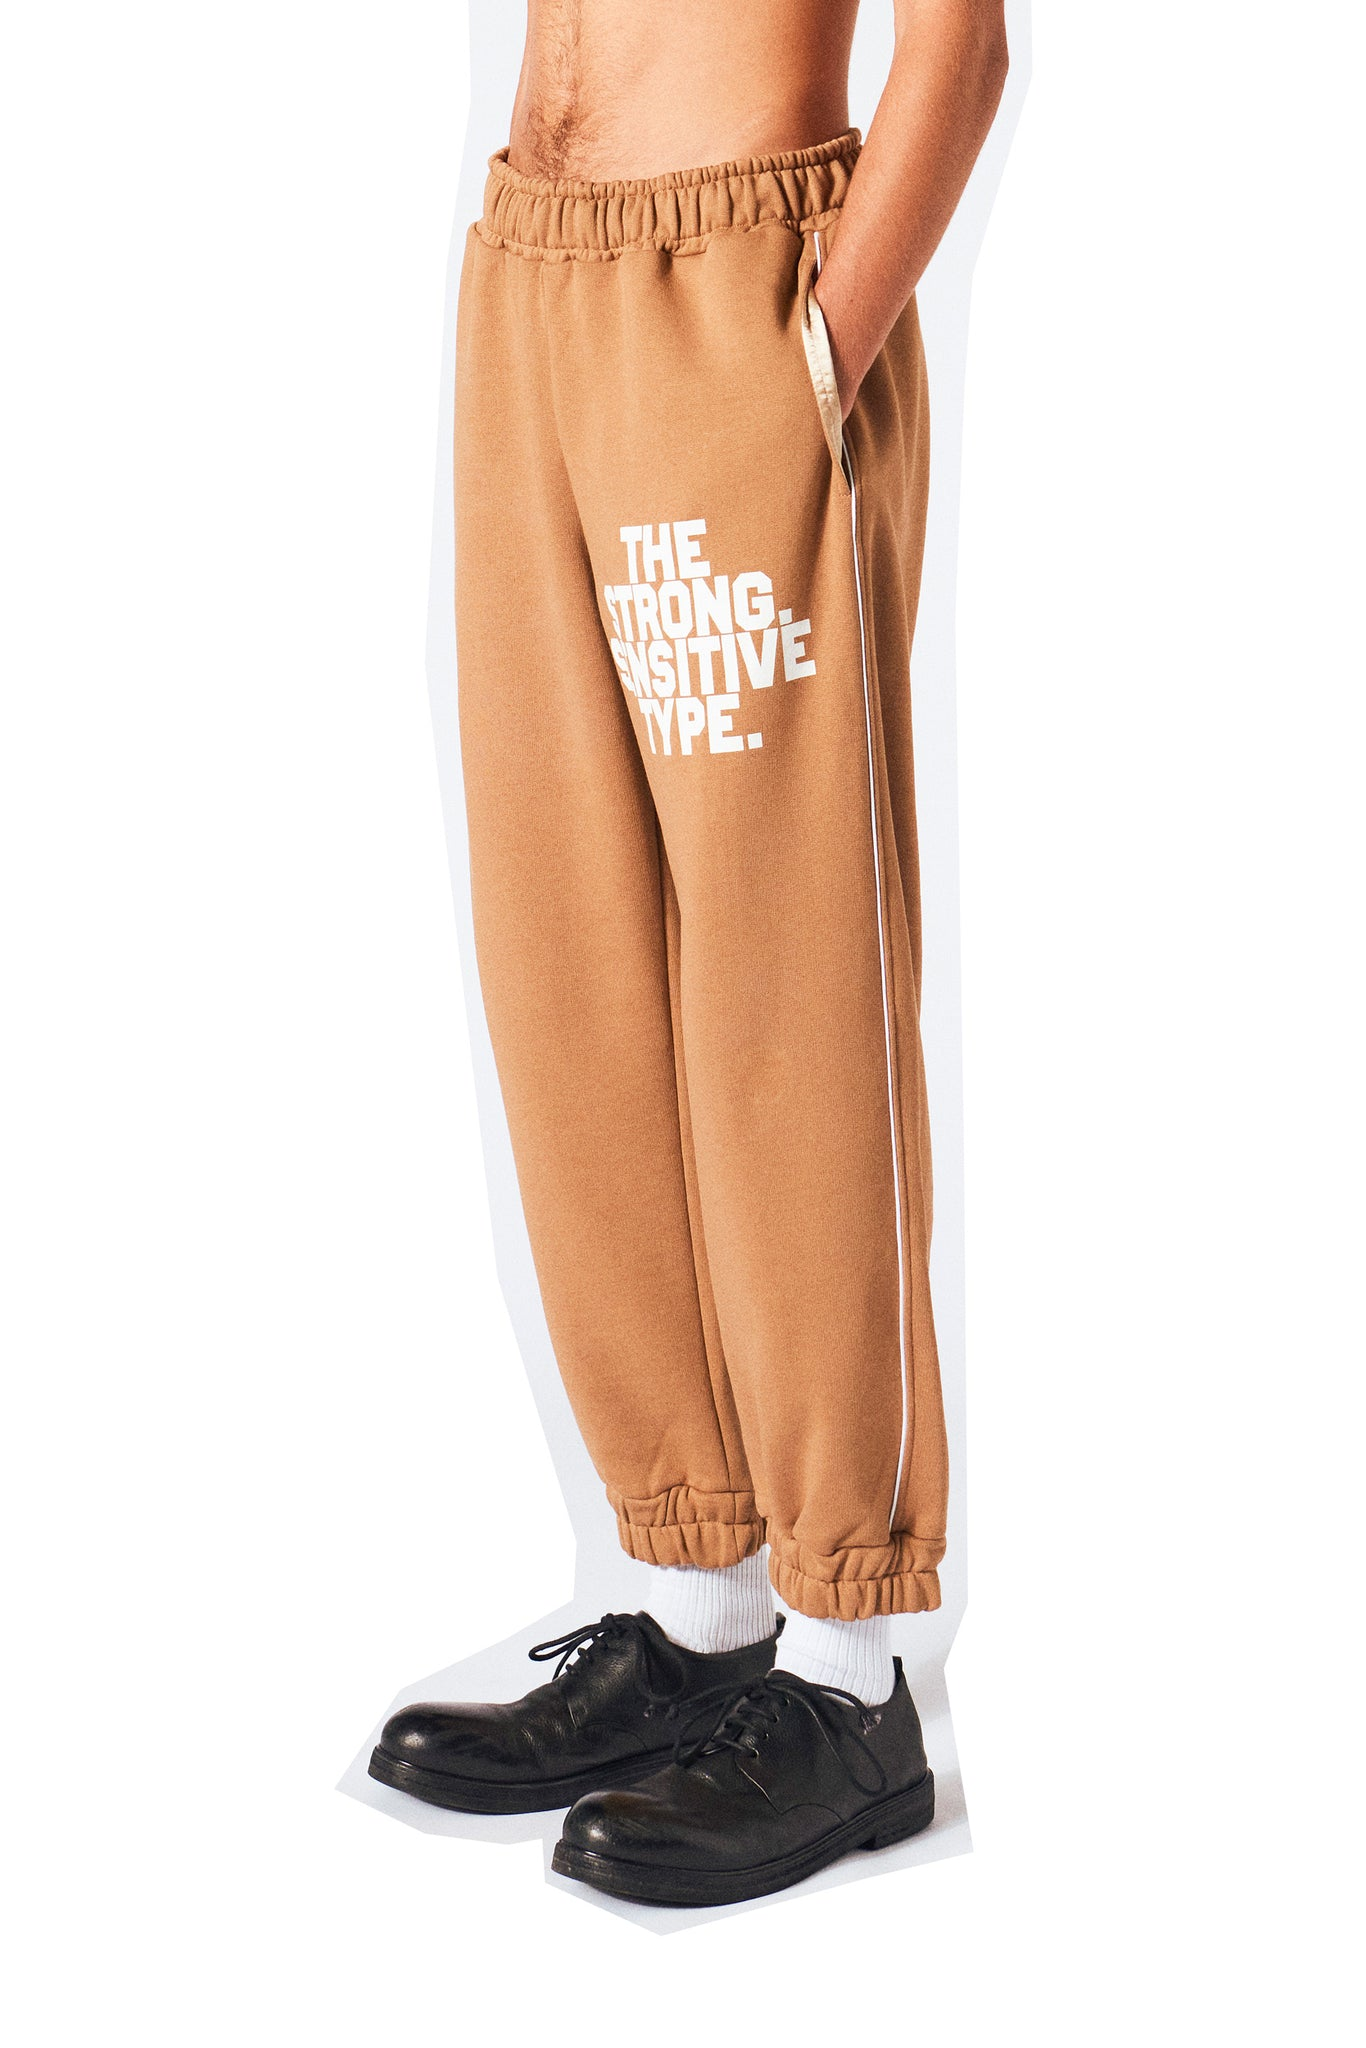 brown sweatpants from Martin Asbjorn the strong sensitive type